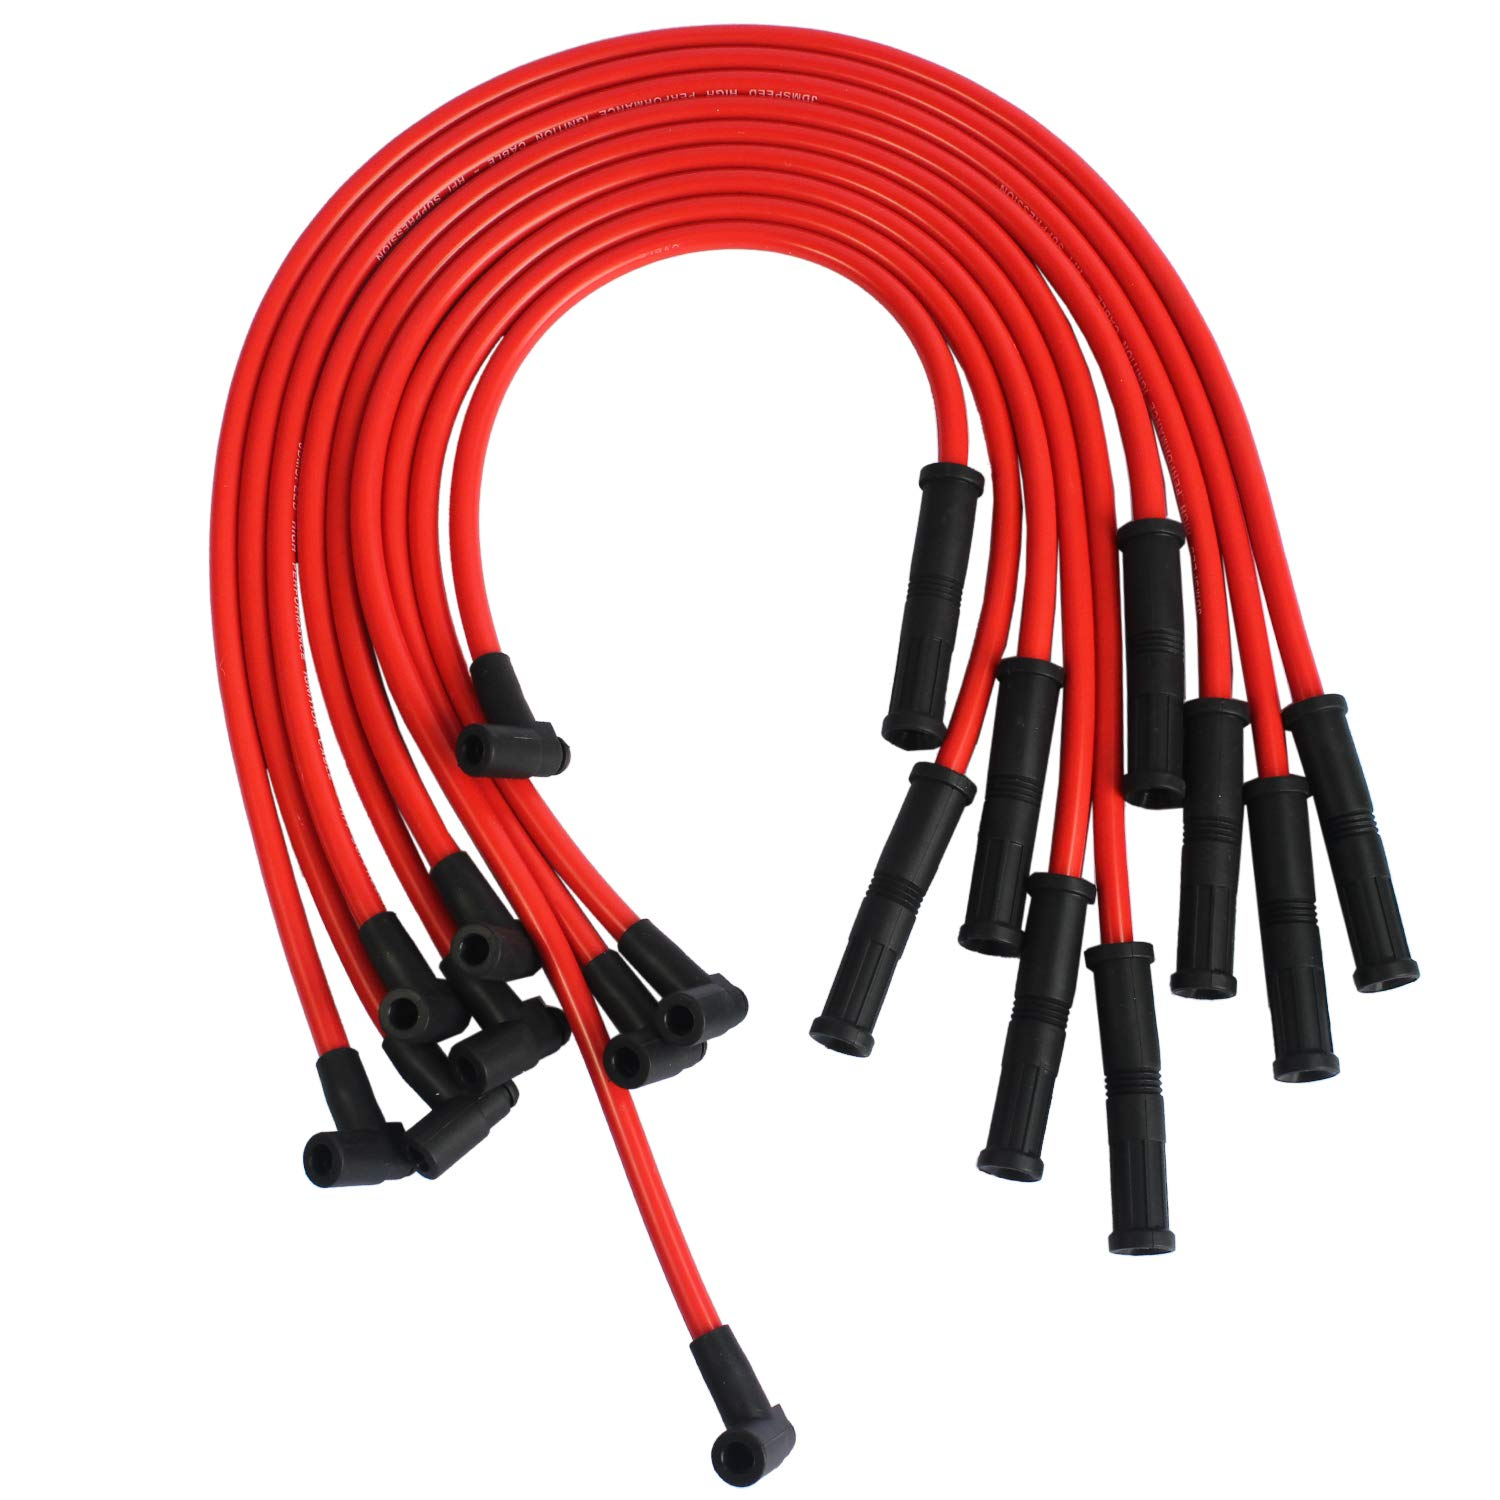 JDMSD New HEI Spark Plug Wires Set 90 To Straight For Chevy SBC BBC on